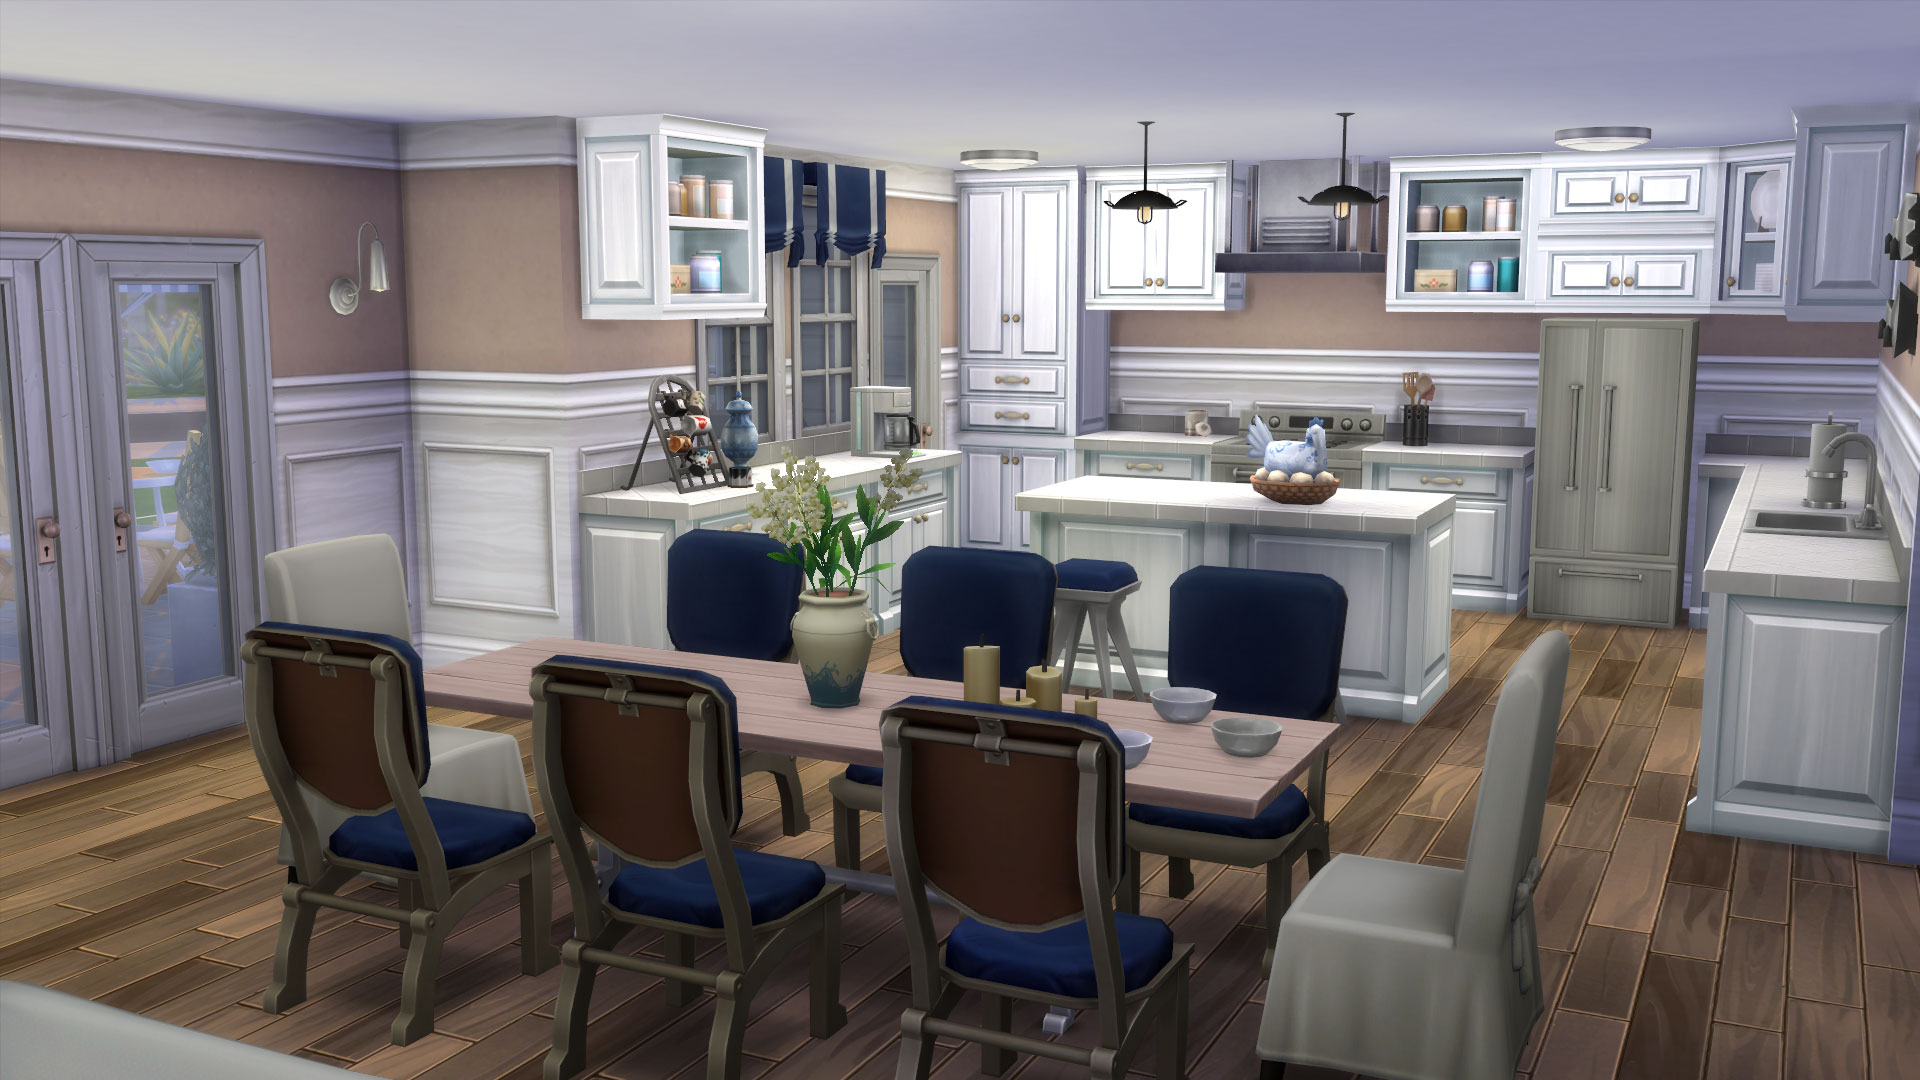 Sims Kitchen The Sims 4 Community Blog Ruthless Kk On Amazing Kitchens Simsvip